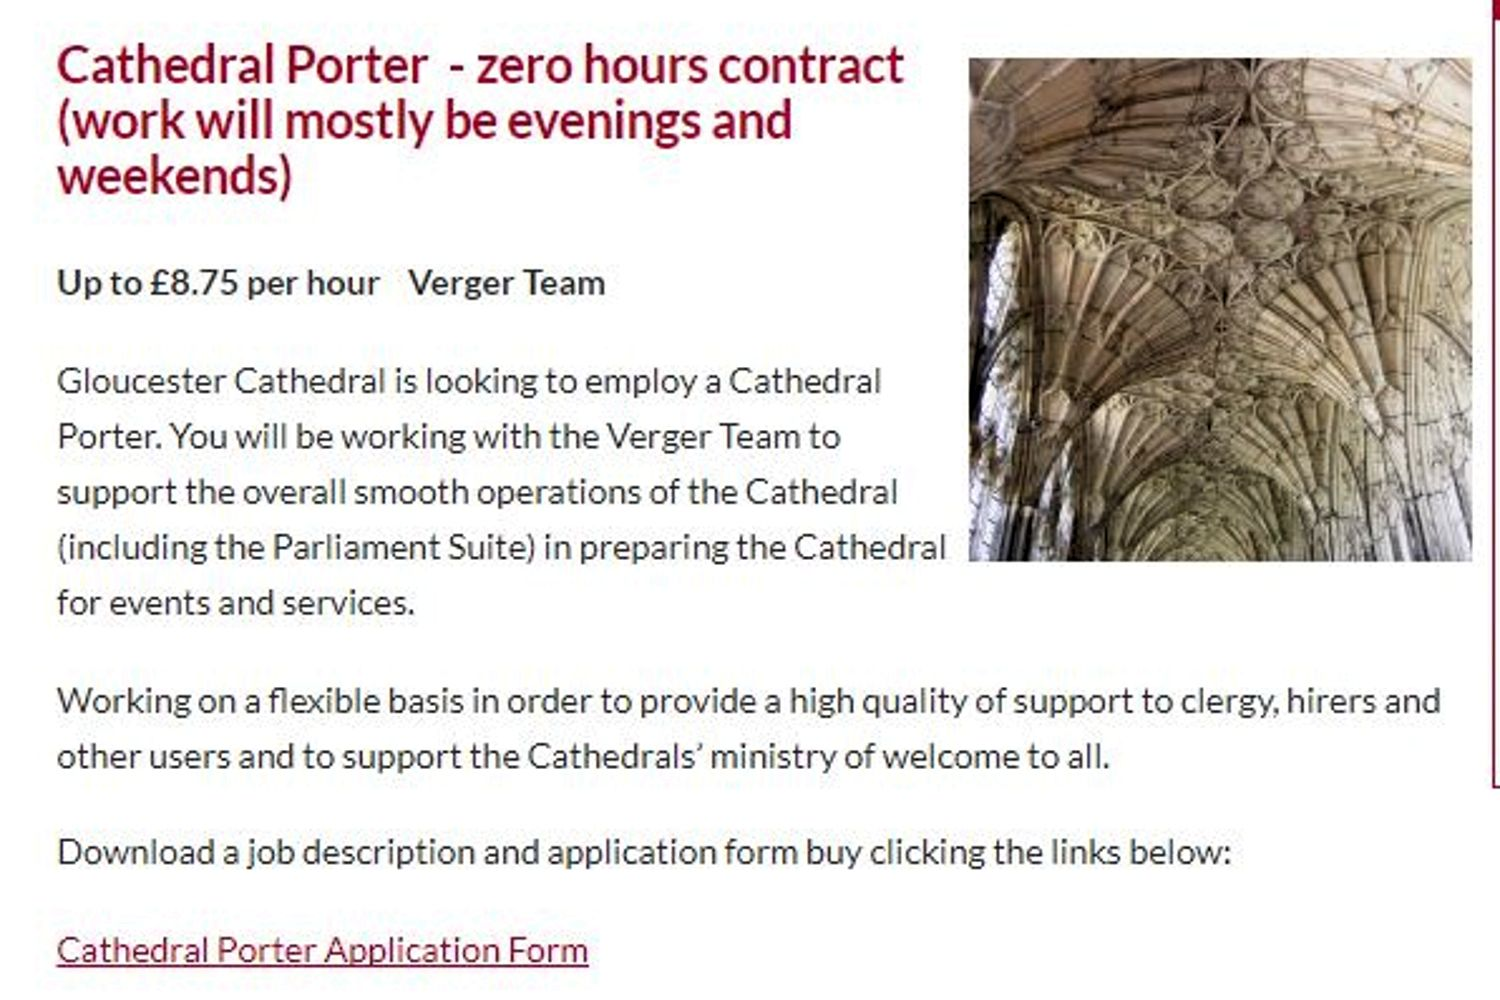 A Job On A Zero-Hours Contract Is Advertised By Gloucester Cathedral